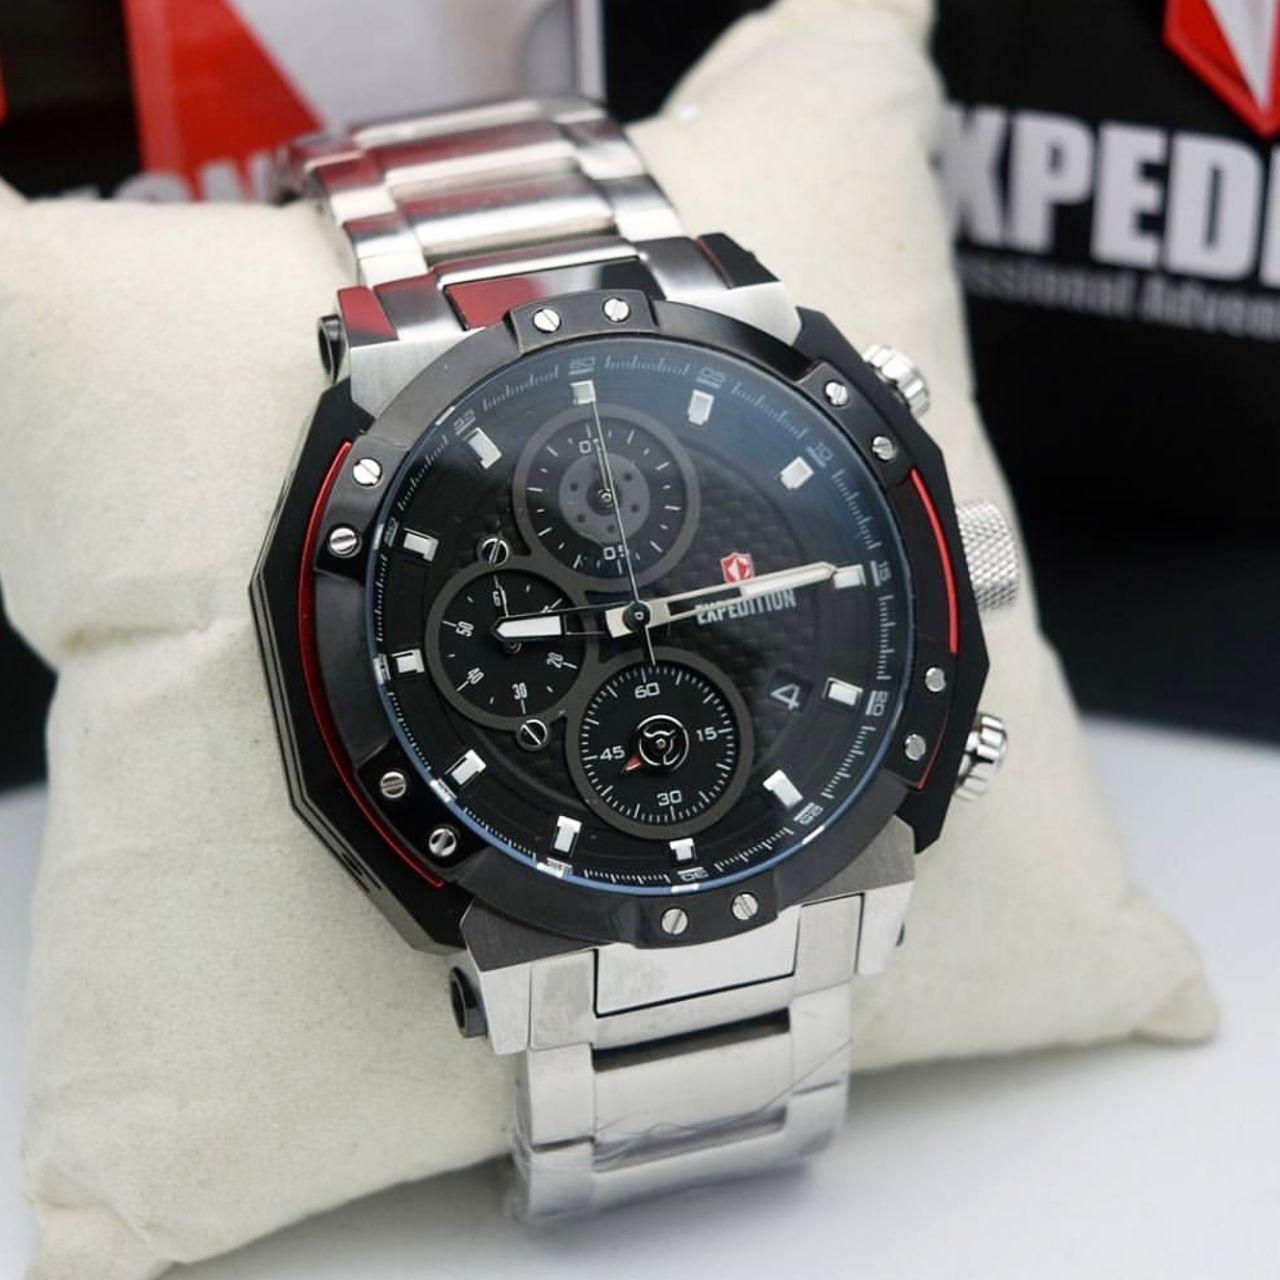 Jam Tangan Expedition Pria Original E6699 Brown Black E6385 Stainless Steel Silver Hitam